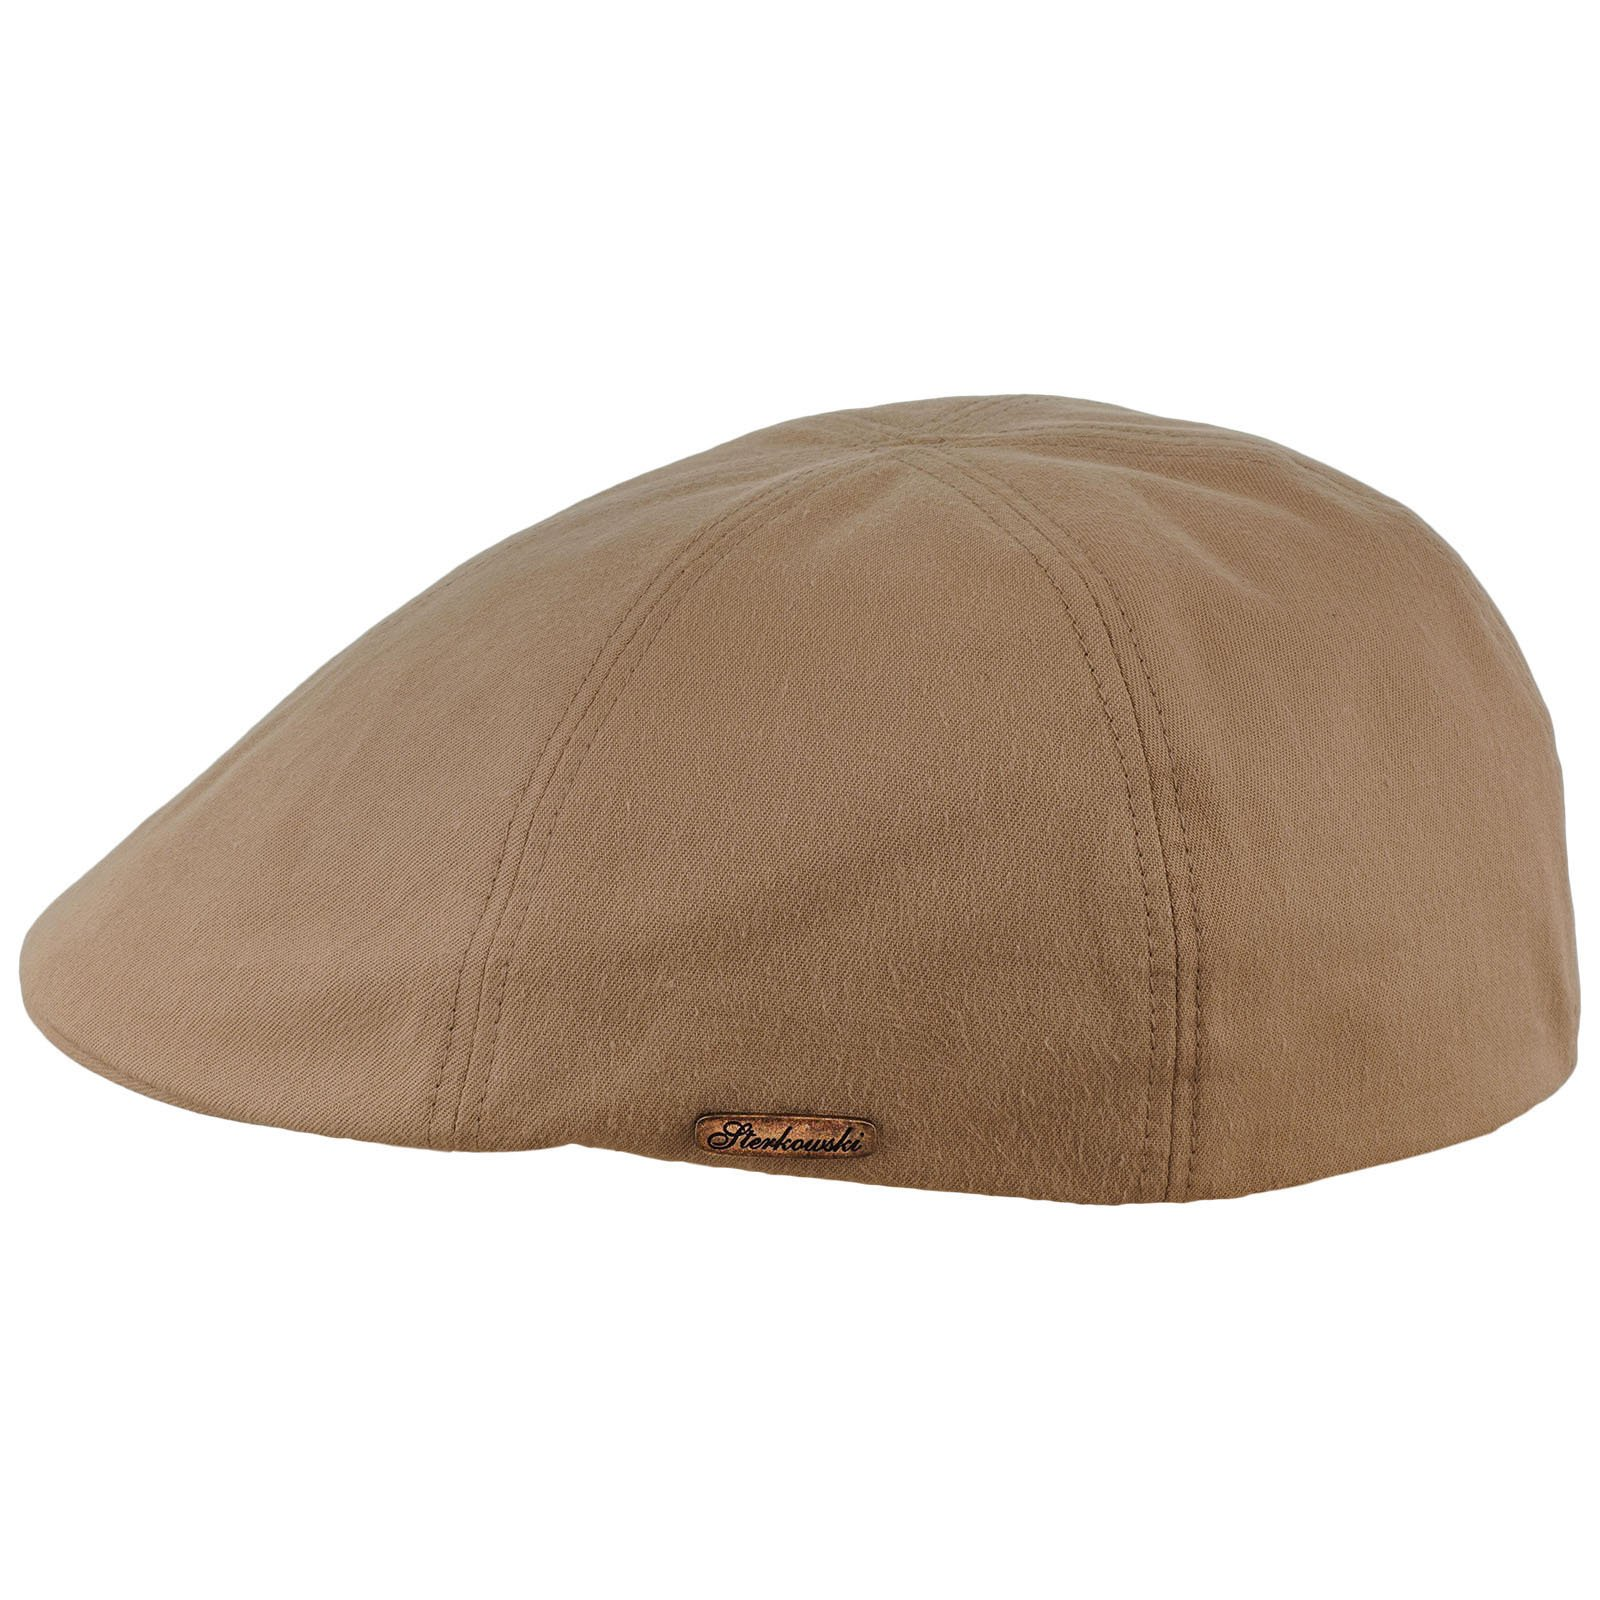 Sterkowski Light Breathable Emerizing Cotton 6 Panel Duckbill Flat Cap, Beige - 58cm = L = US 7 1/4 by Sterkowski (Image #1)